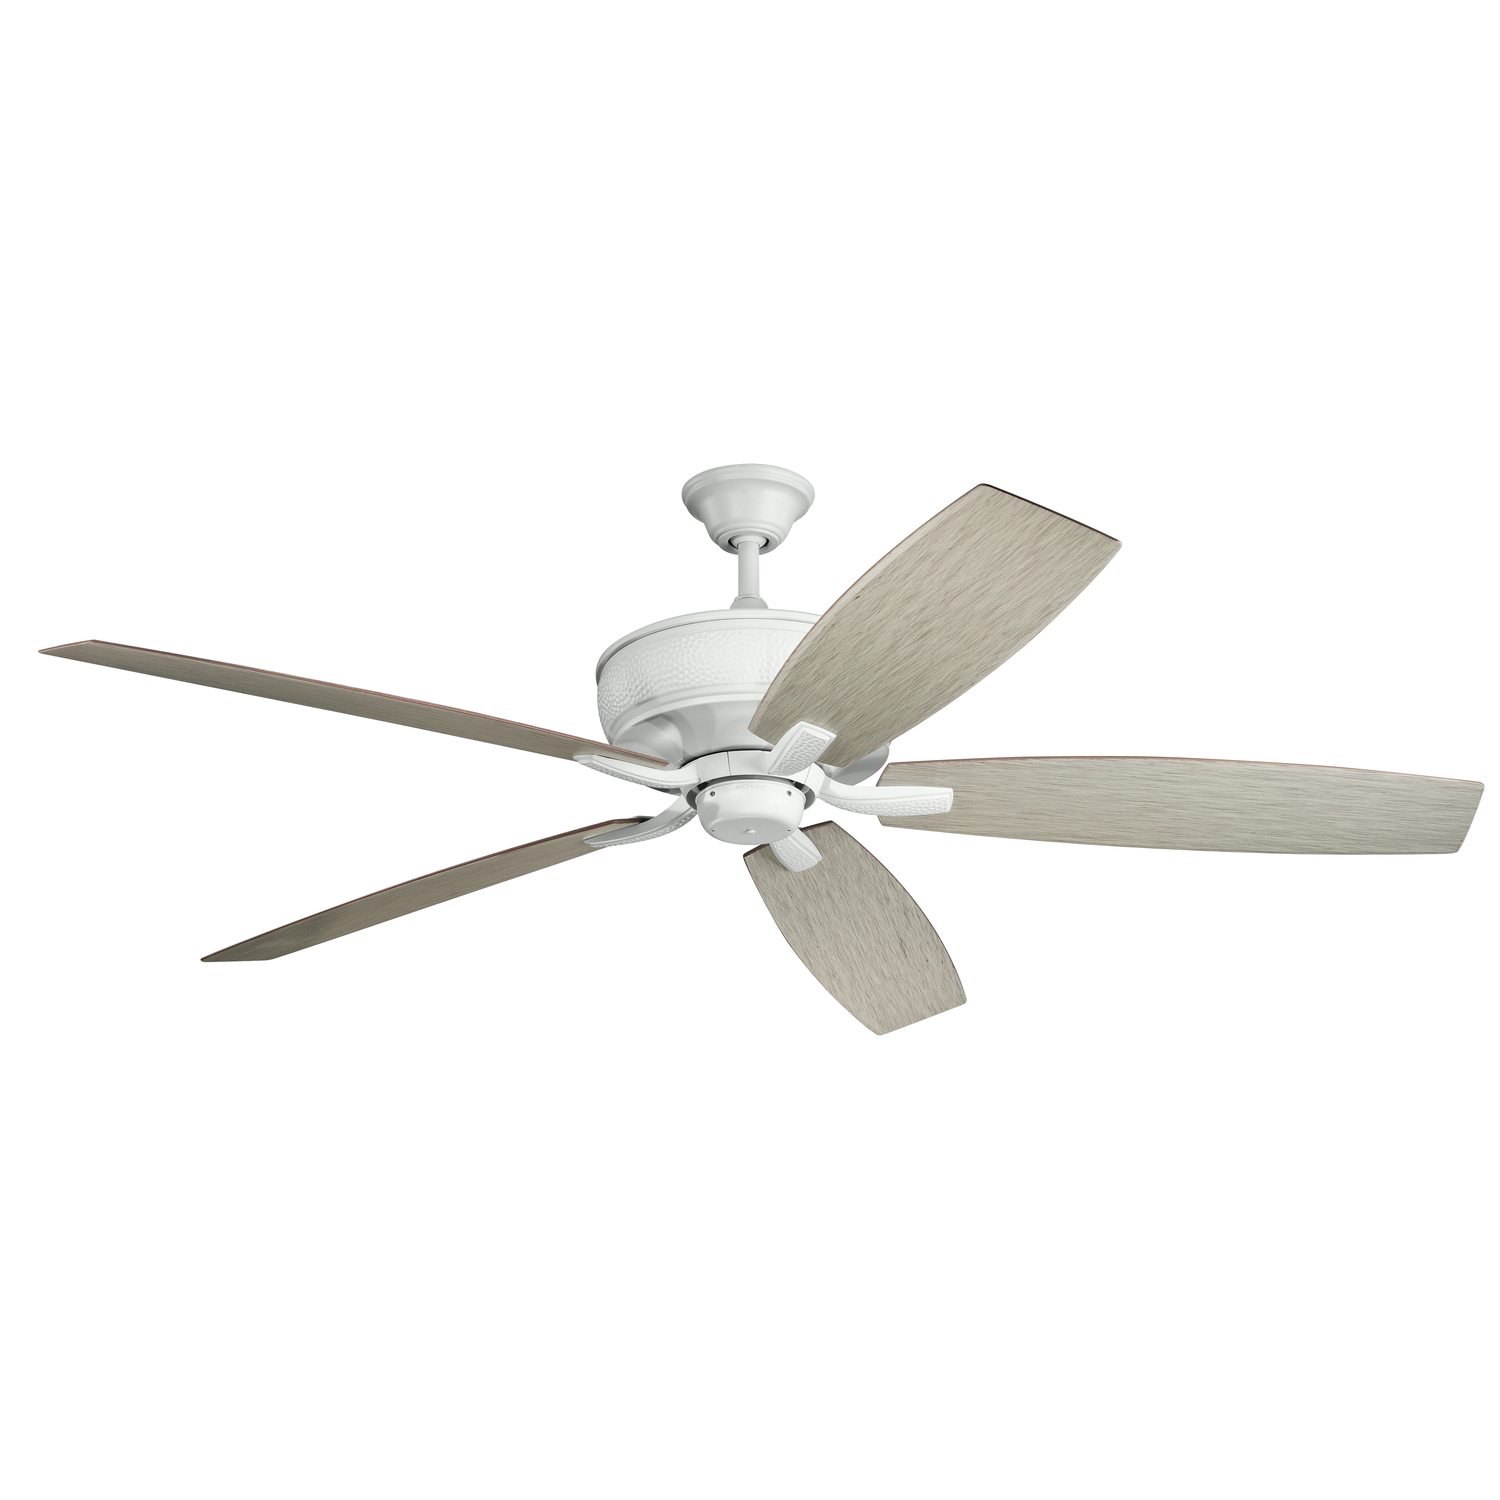 in ceiling fan persian shown finish white patio quorum cfm marsden inch international item blade